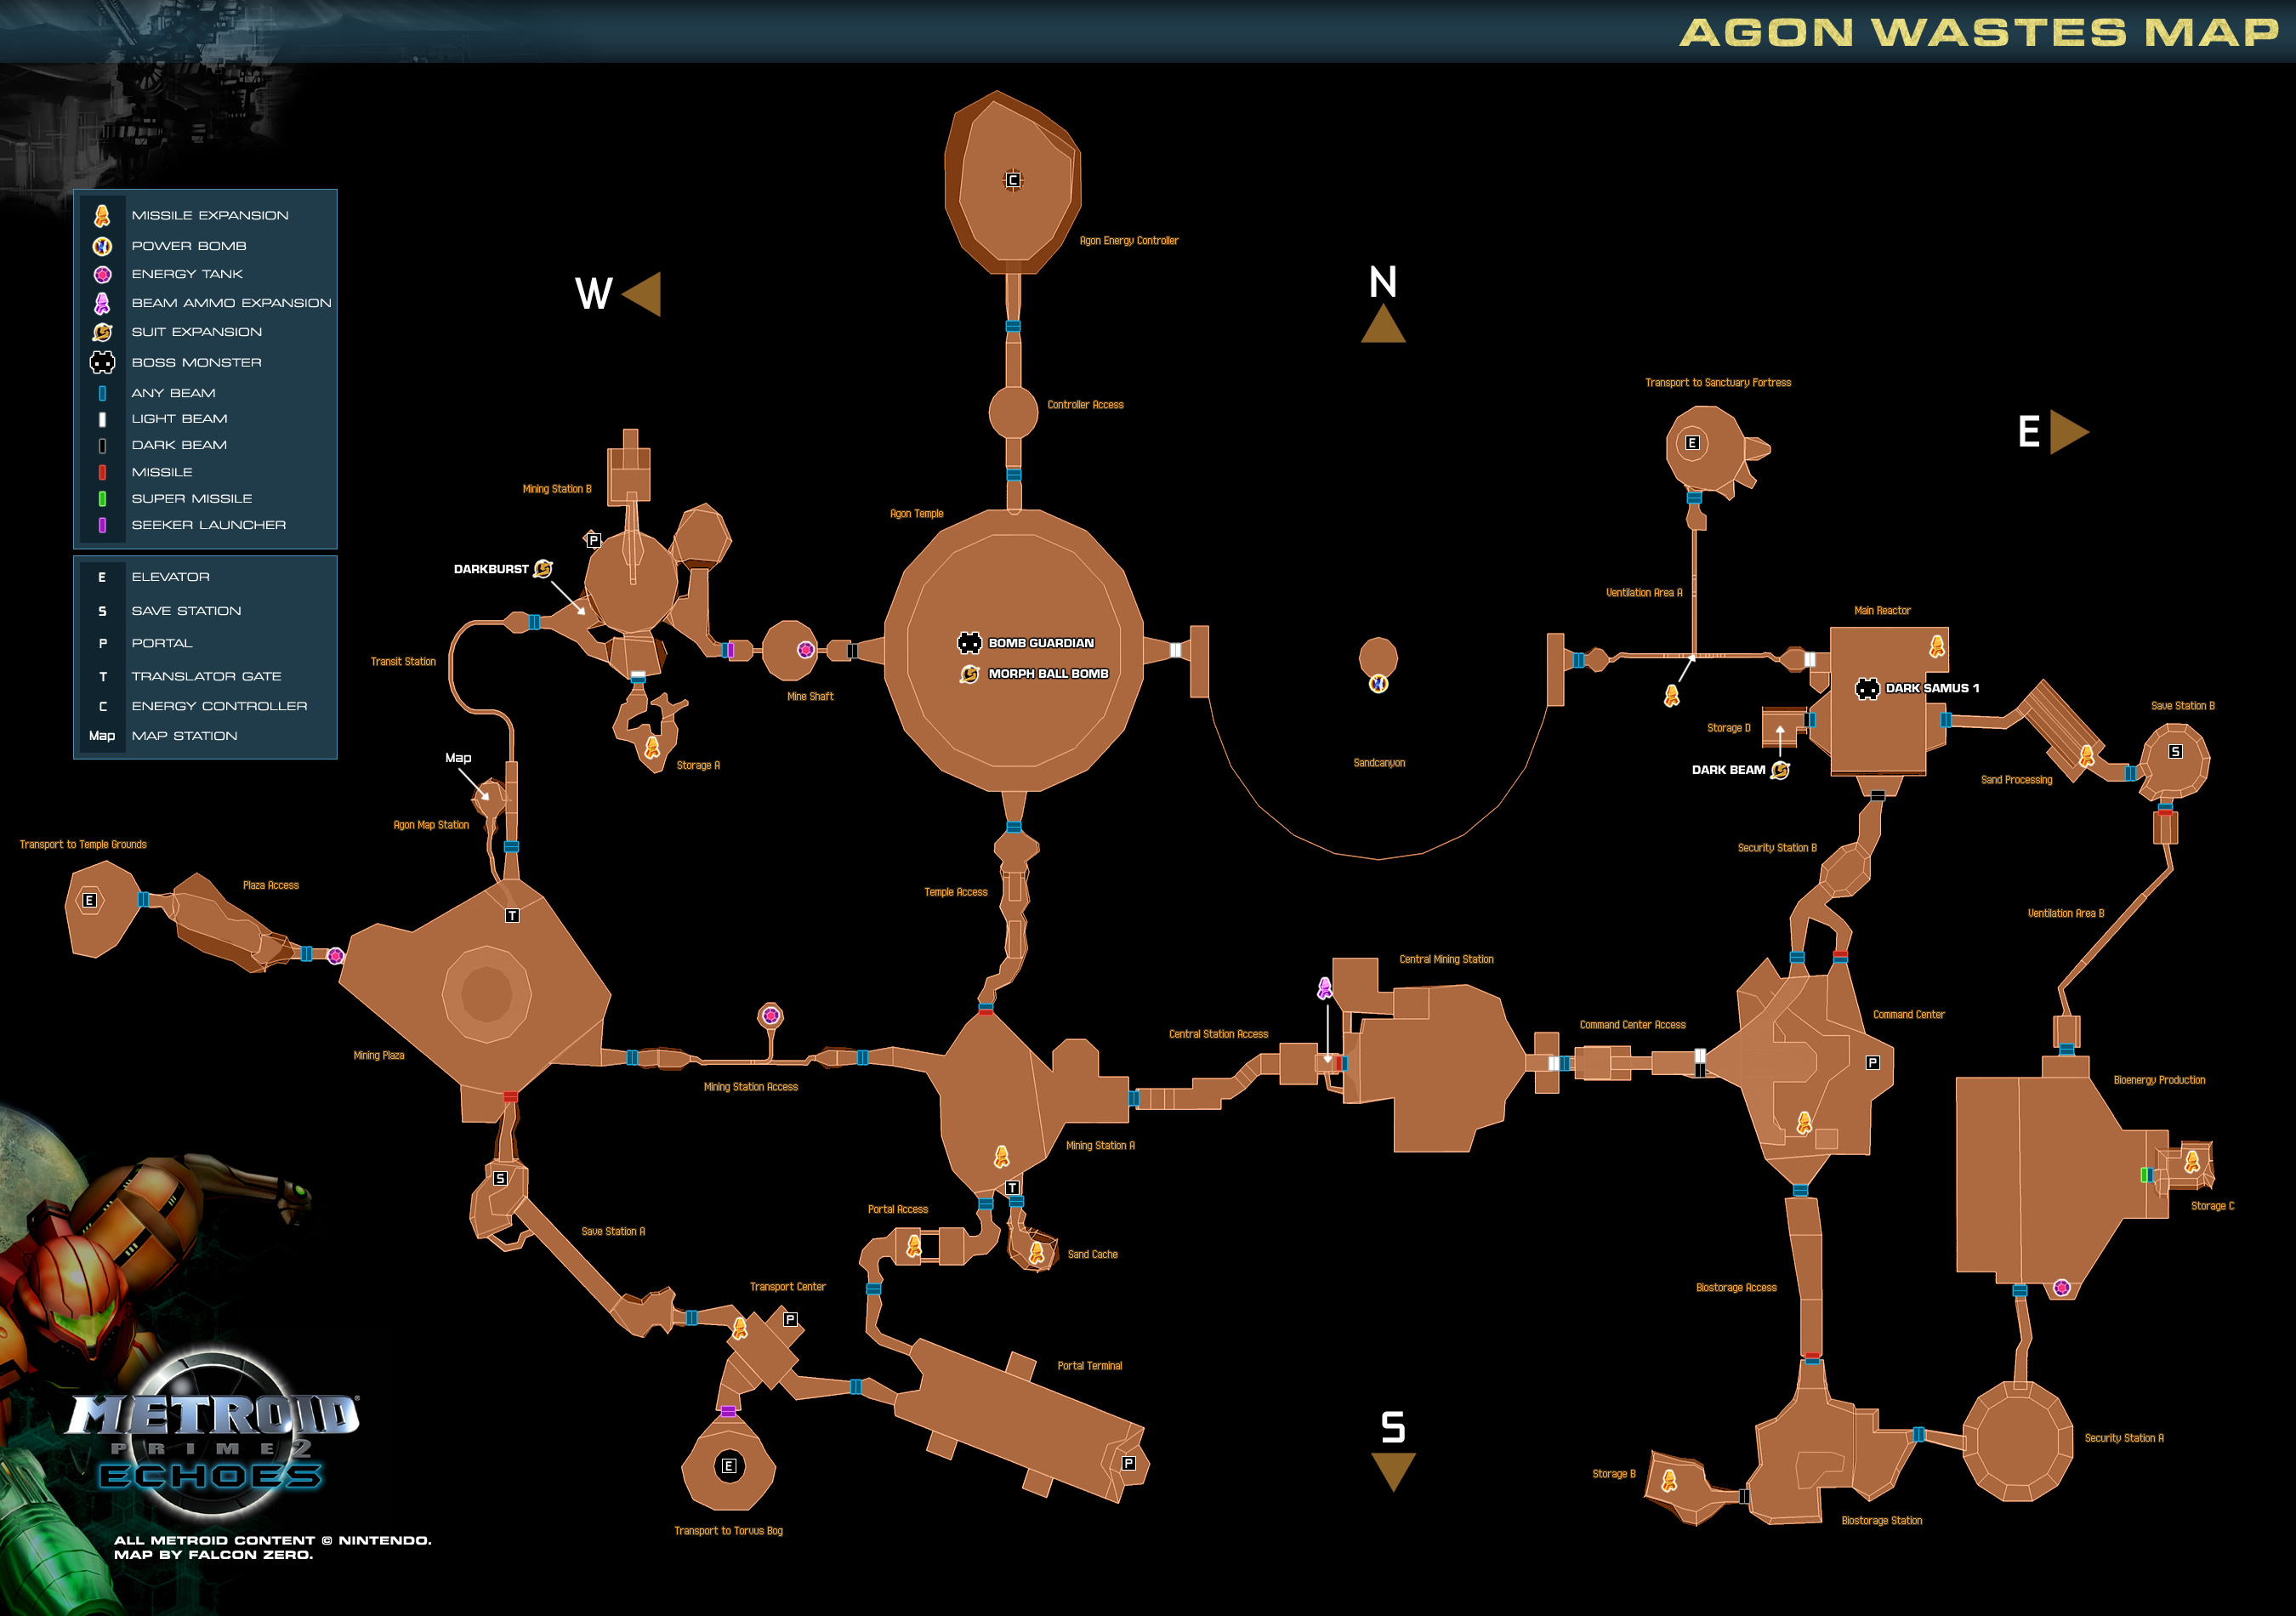 Game maps   Metroid Prime 2  Echoes  Metroid Recon  Agon Wastes